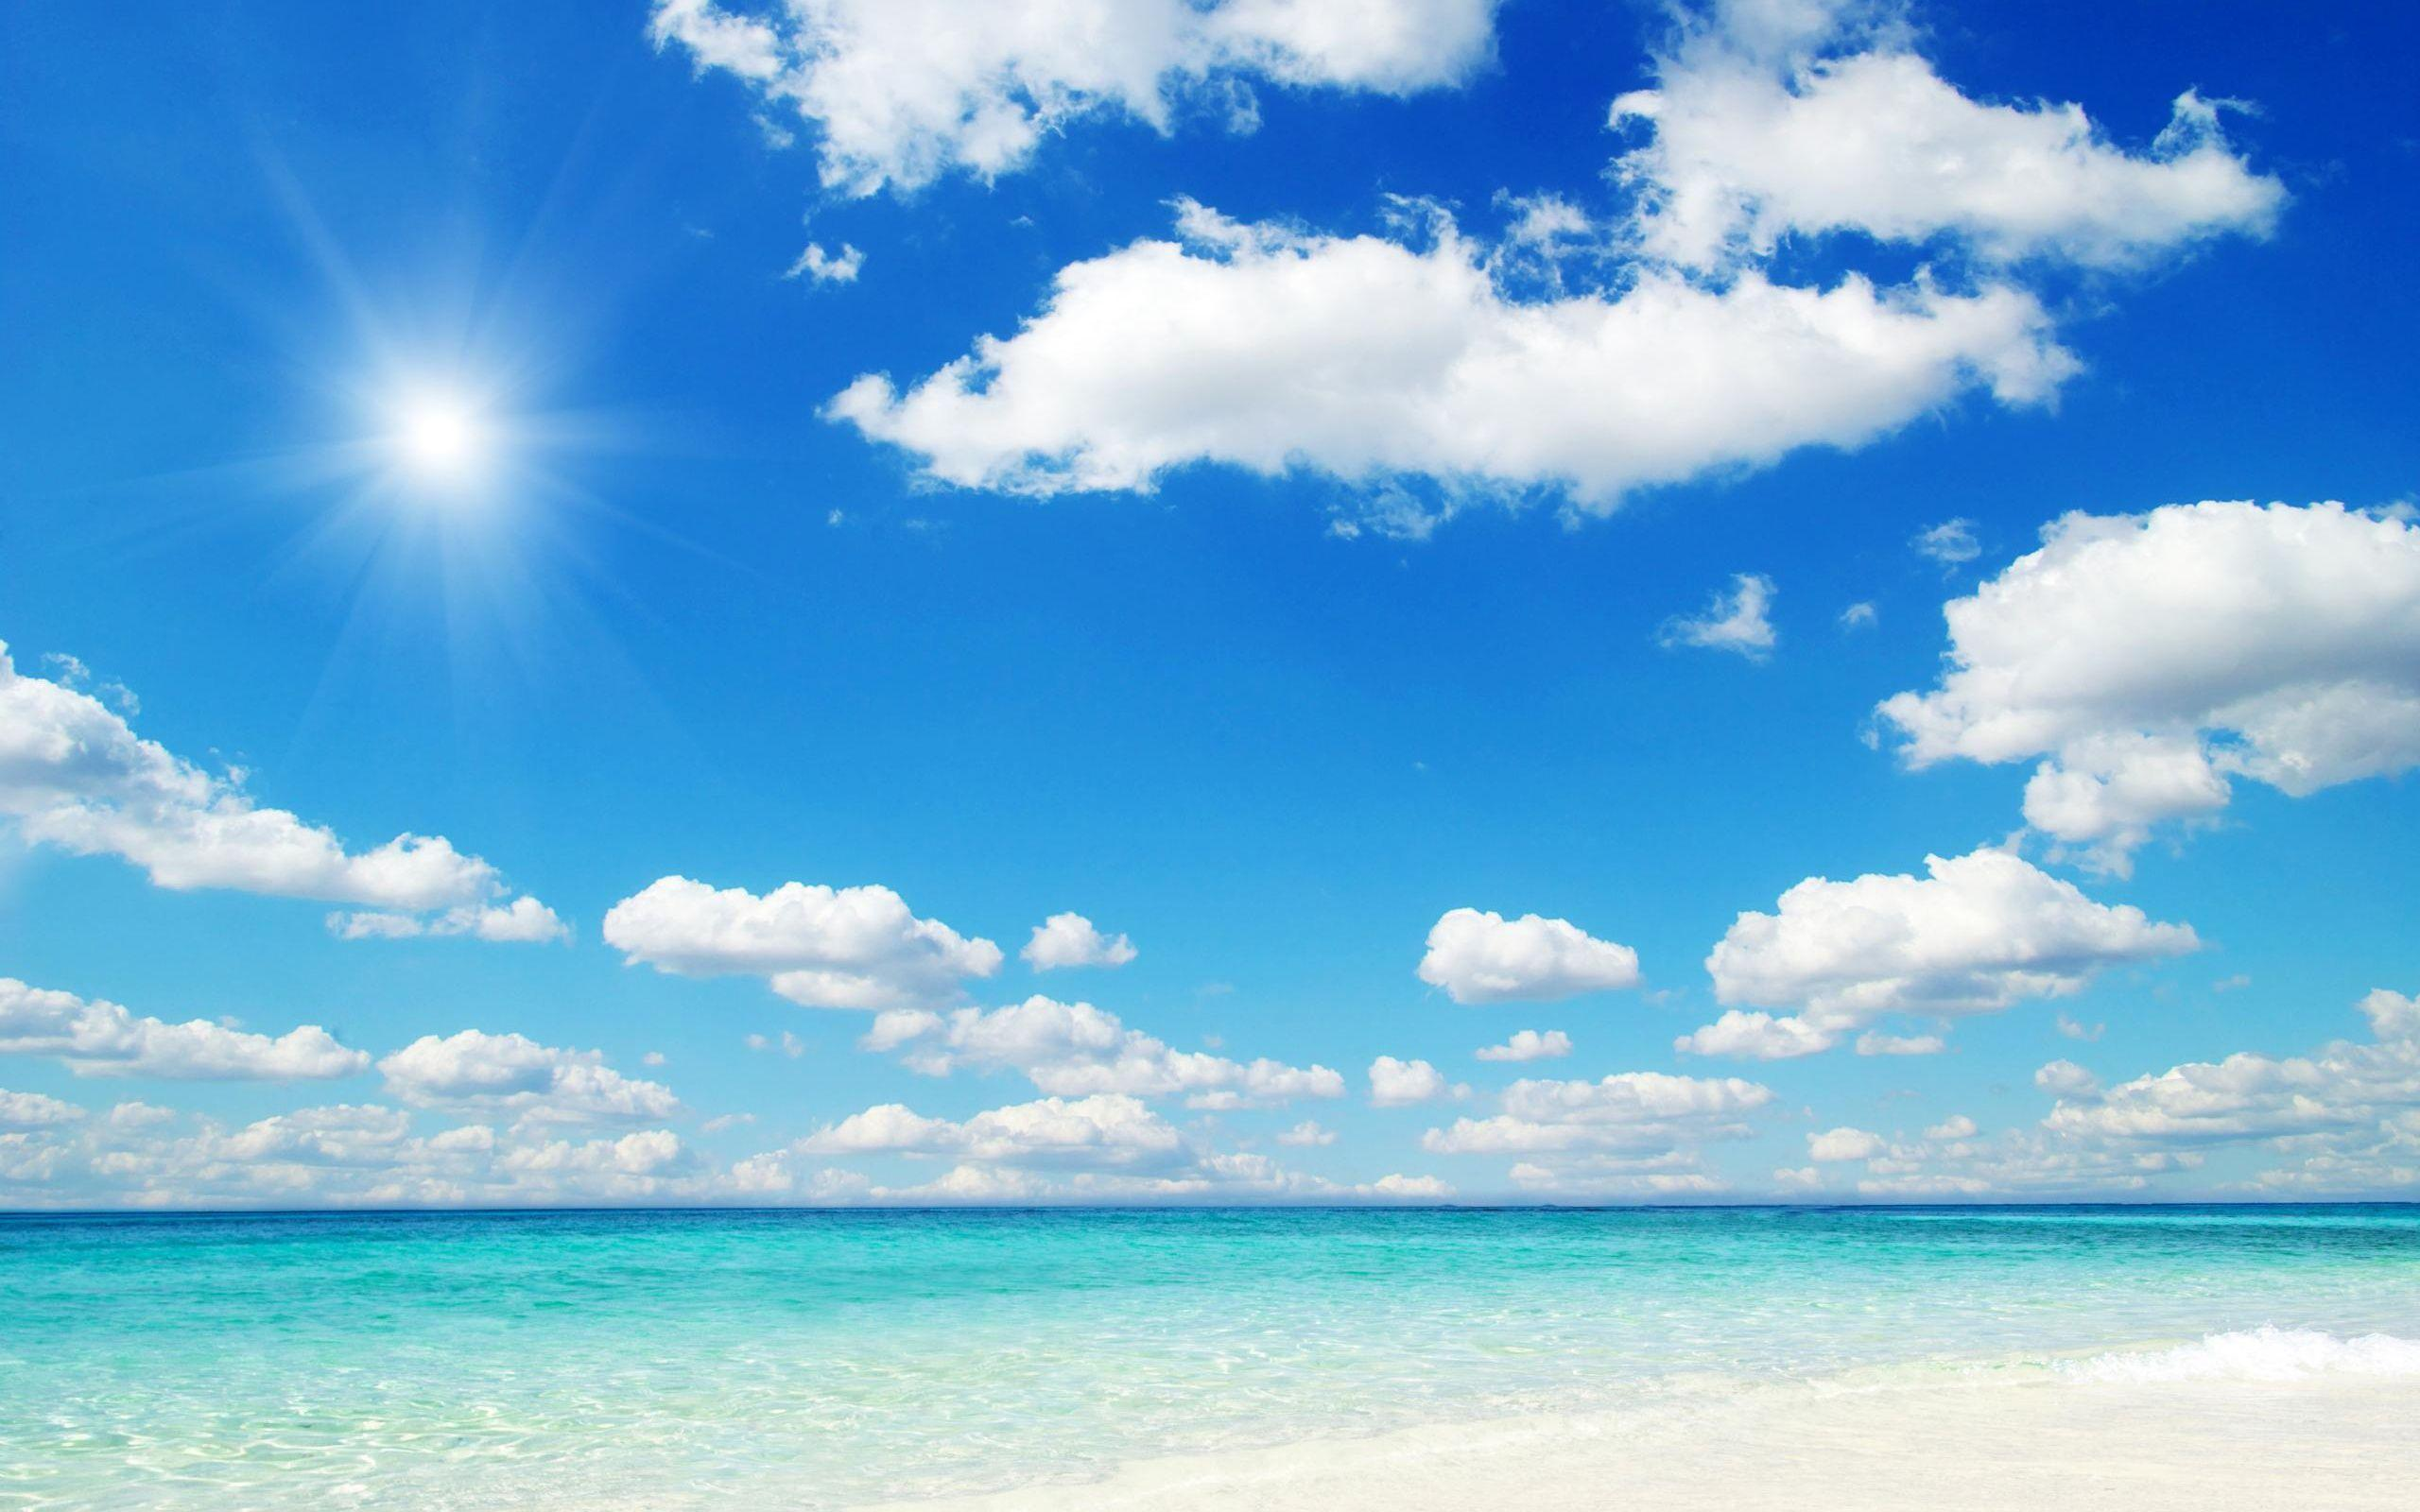 Beach Blue Sky PC Wallpapers - HD Wallpapers Inn